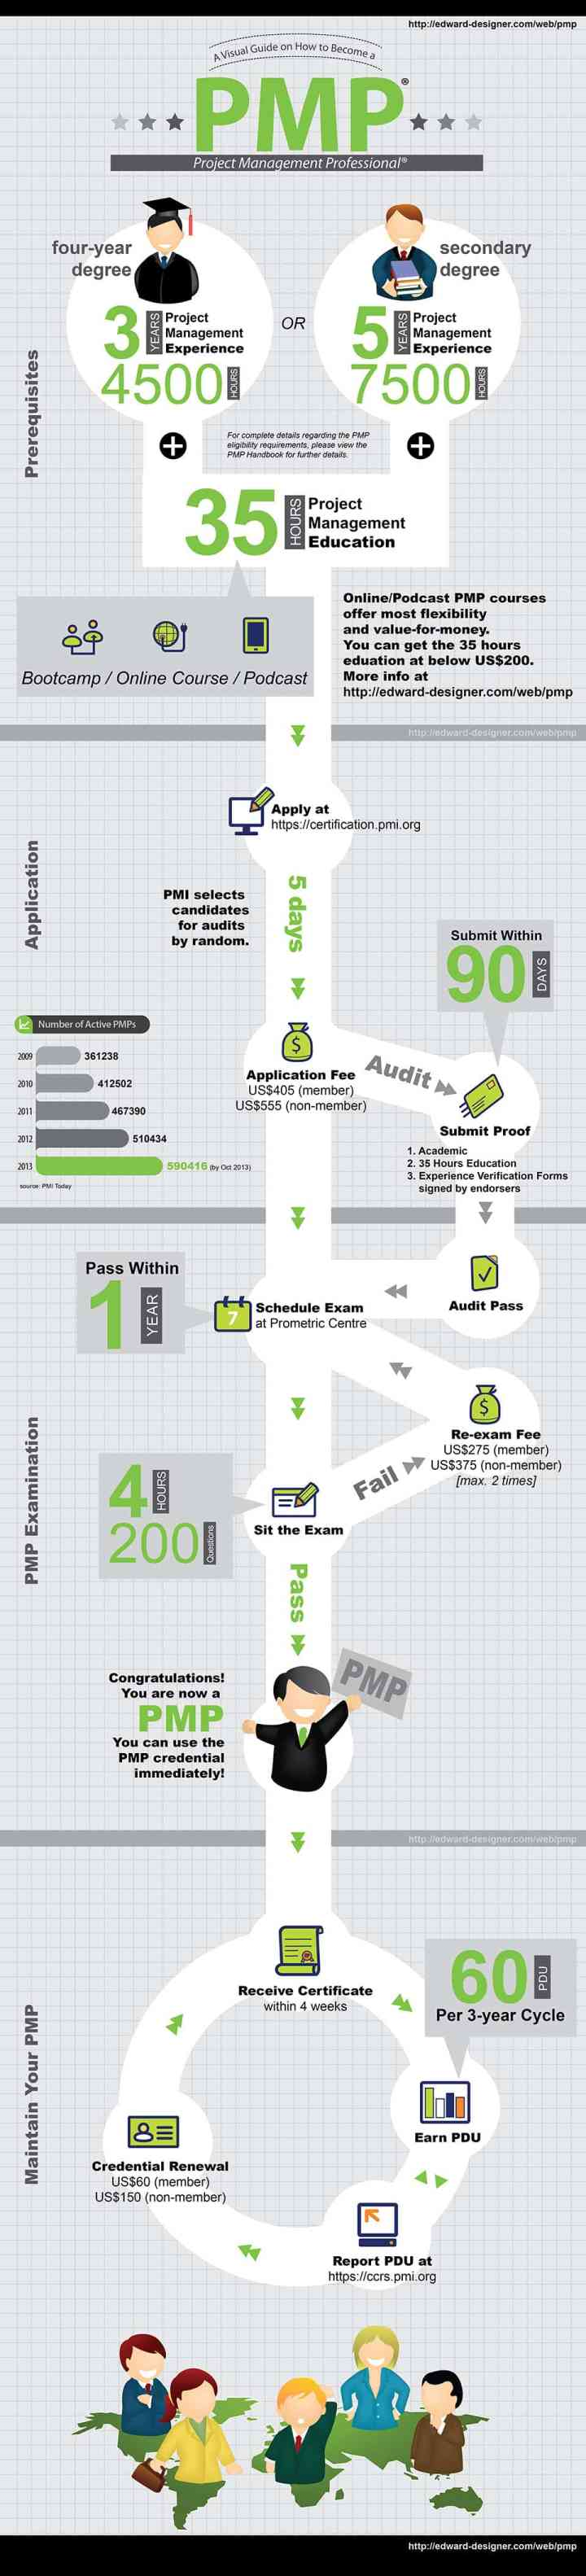 pmp certification process infographic